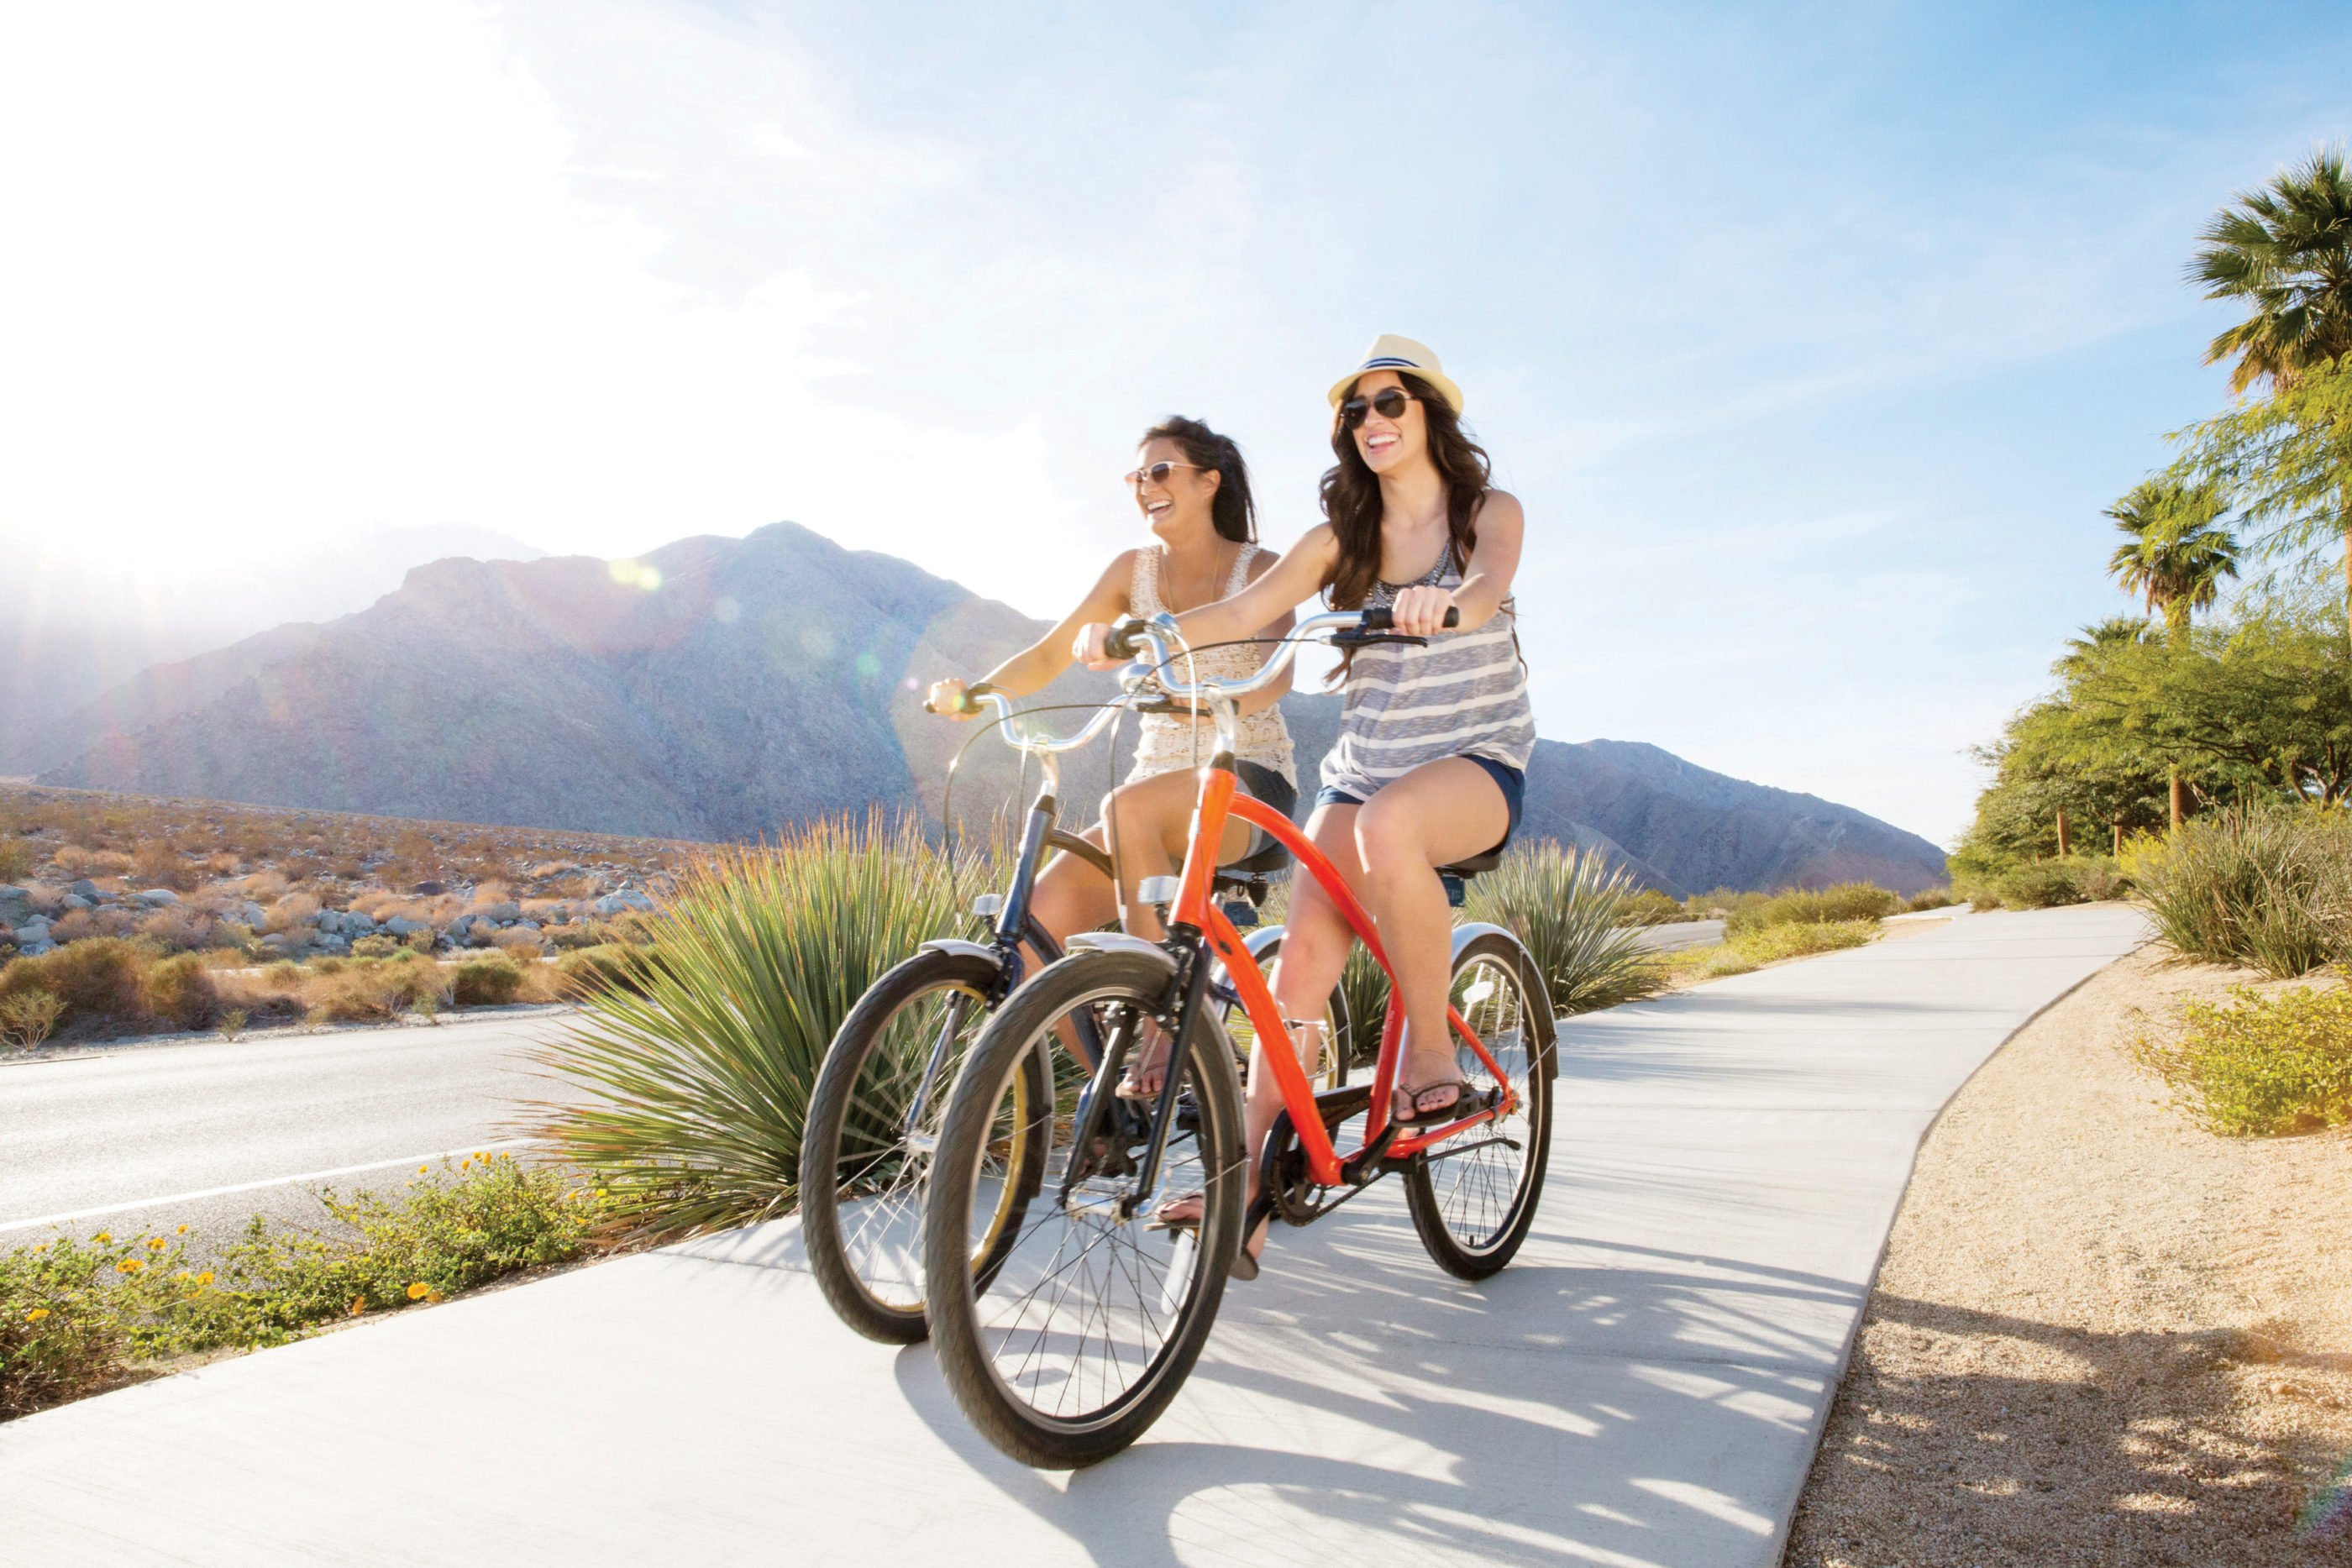 Two women ride bikes casually along a cement path with mountains and desert in the background.